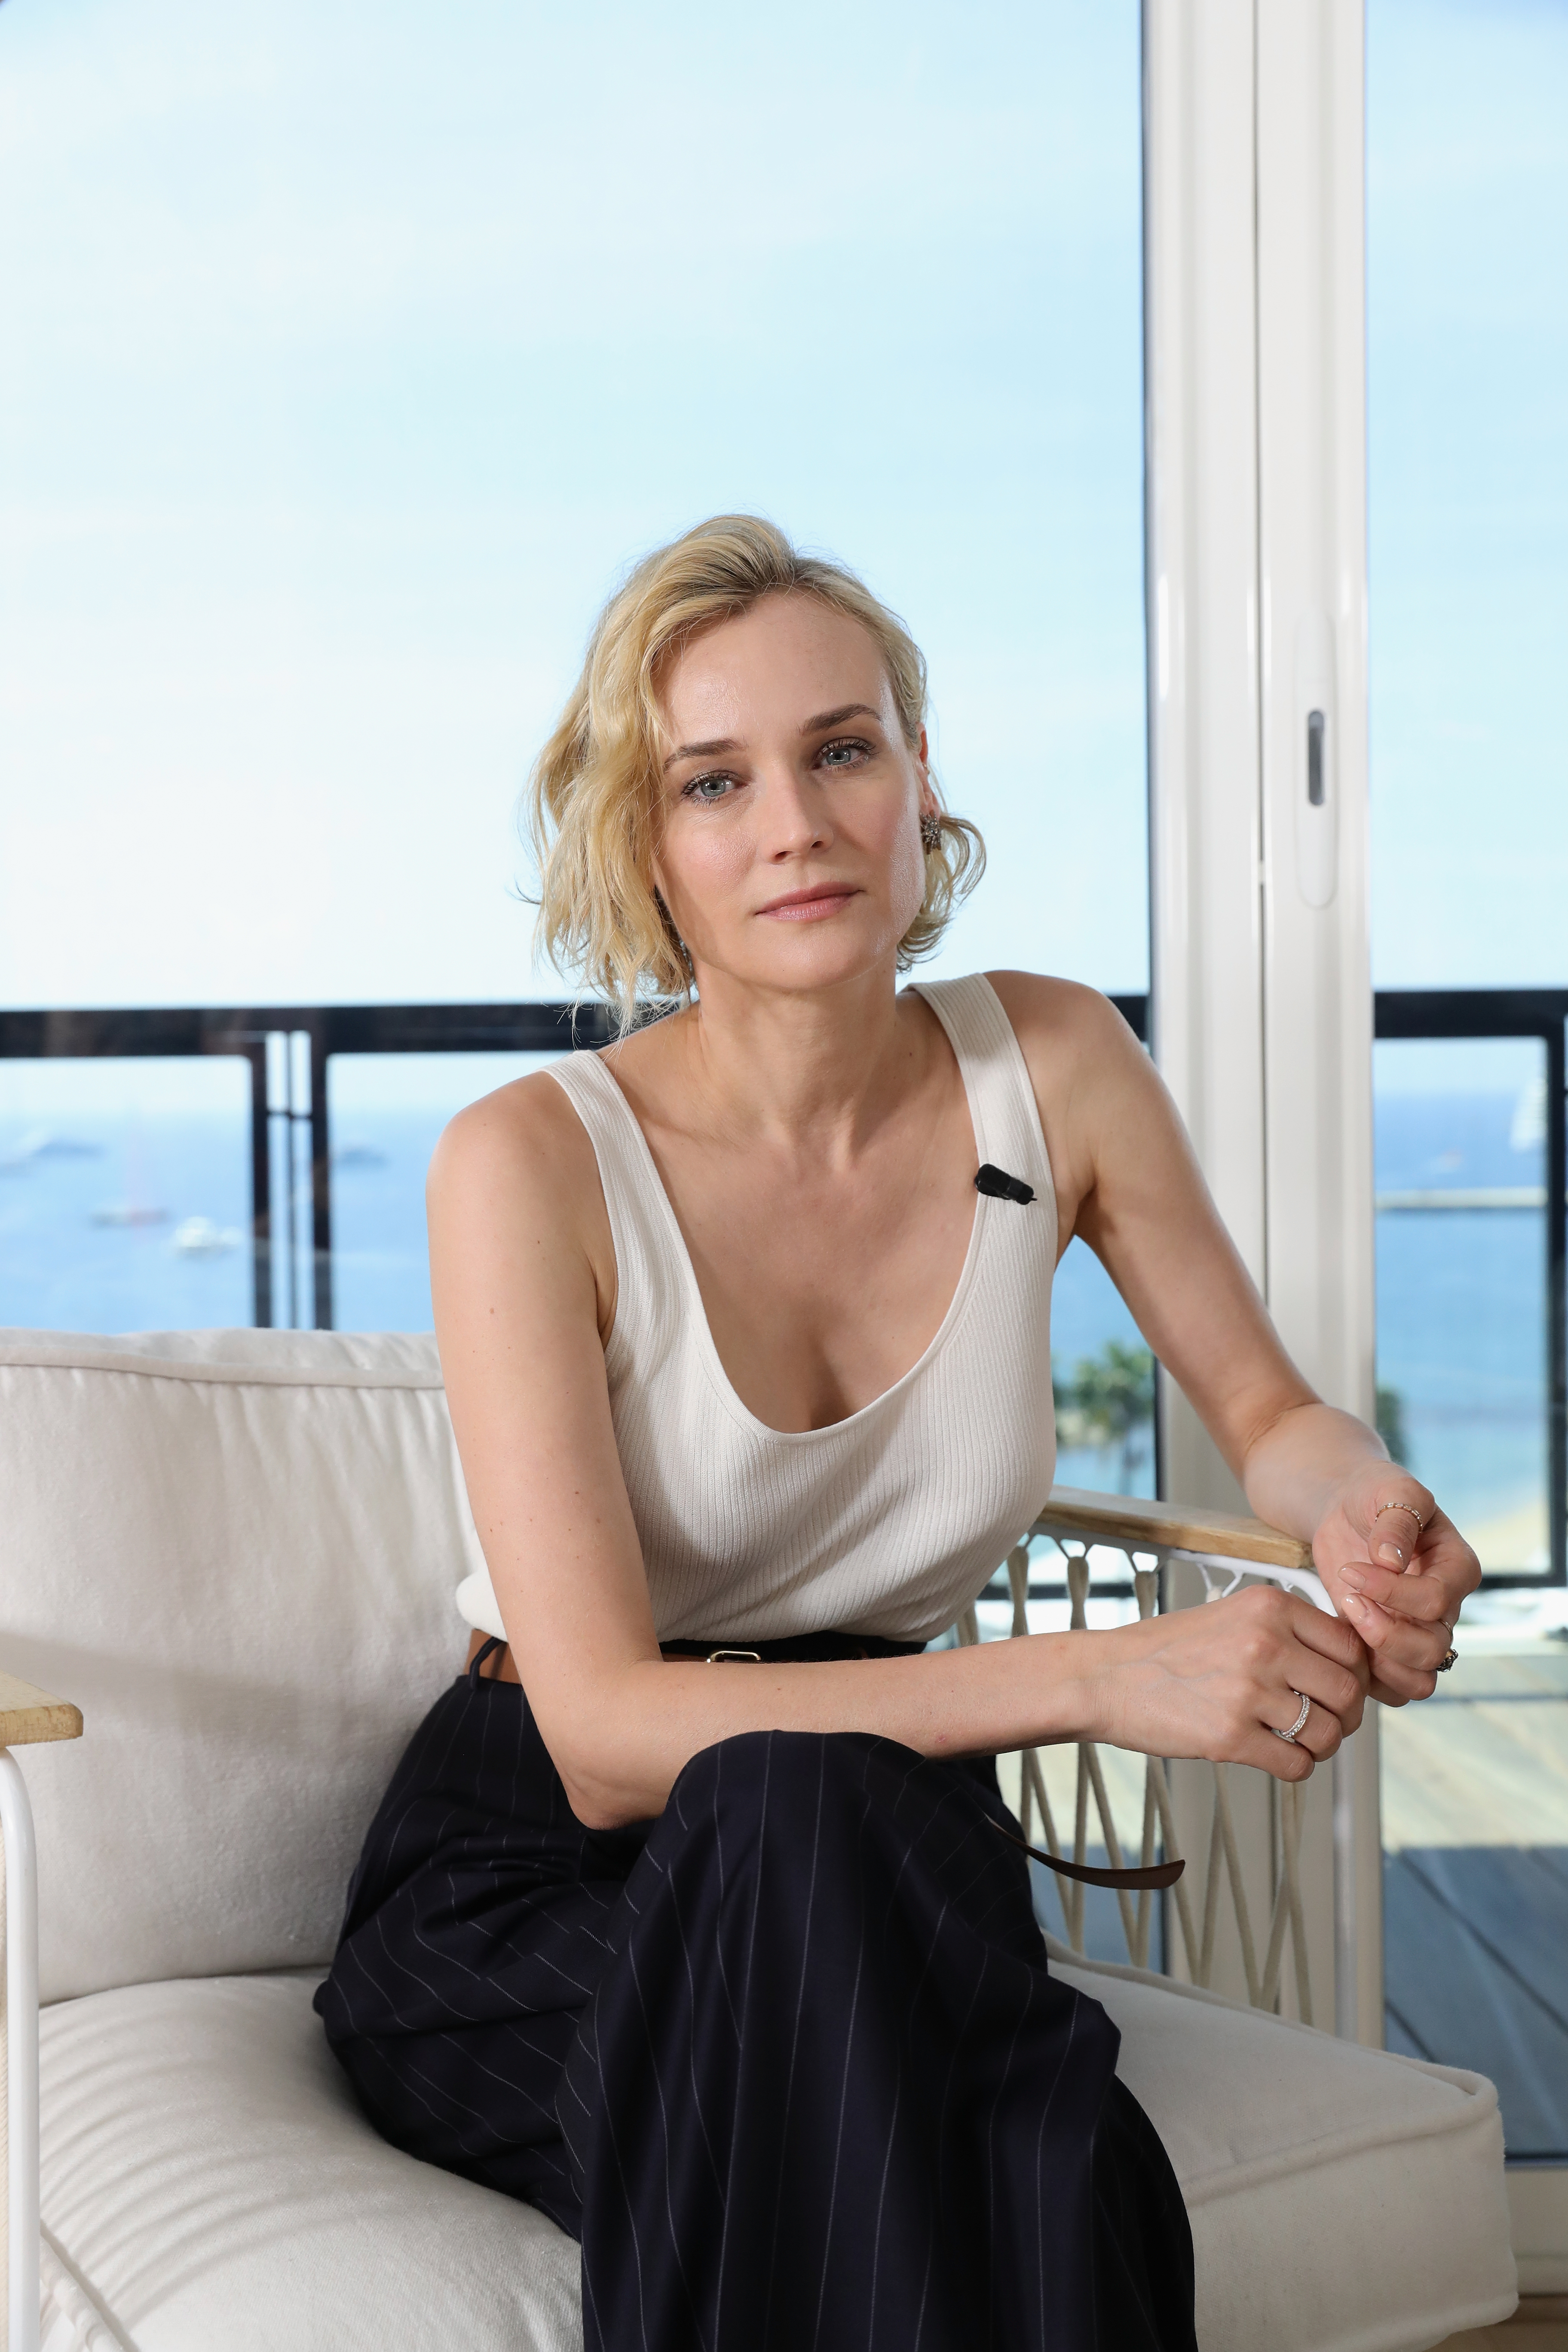 Diane Kruger in GREY Jason Wu x Diane Kruger collection attends Kering's Women In Motion talk.